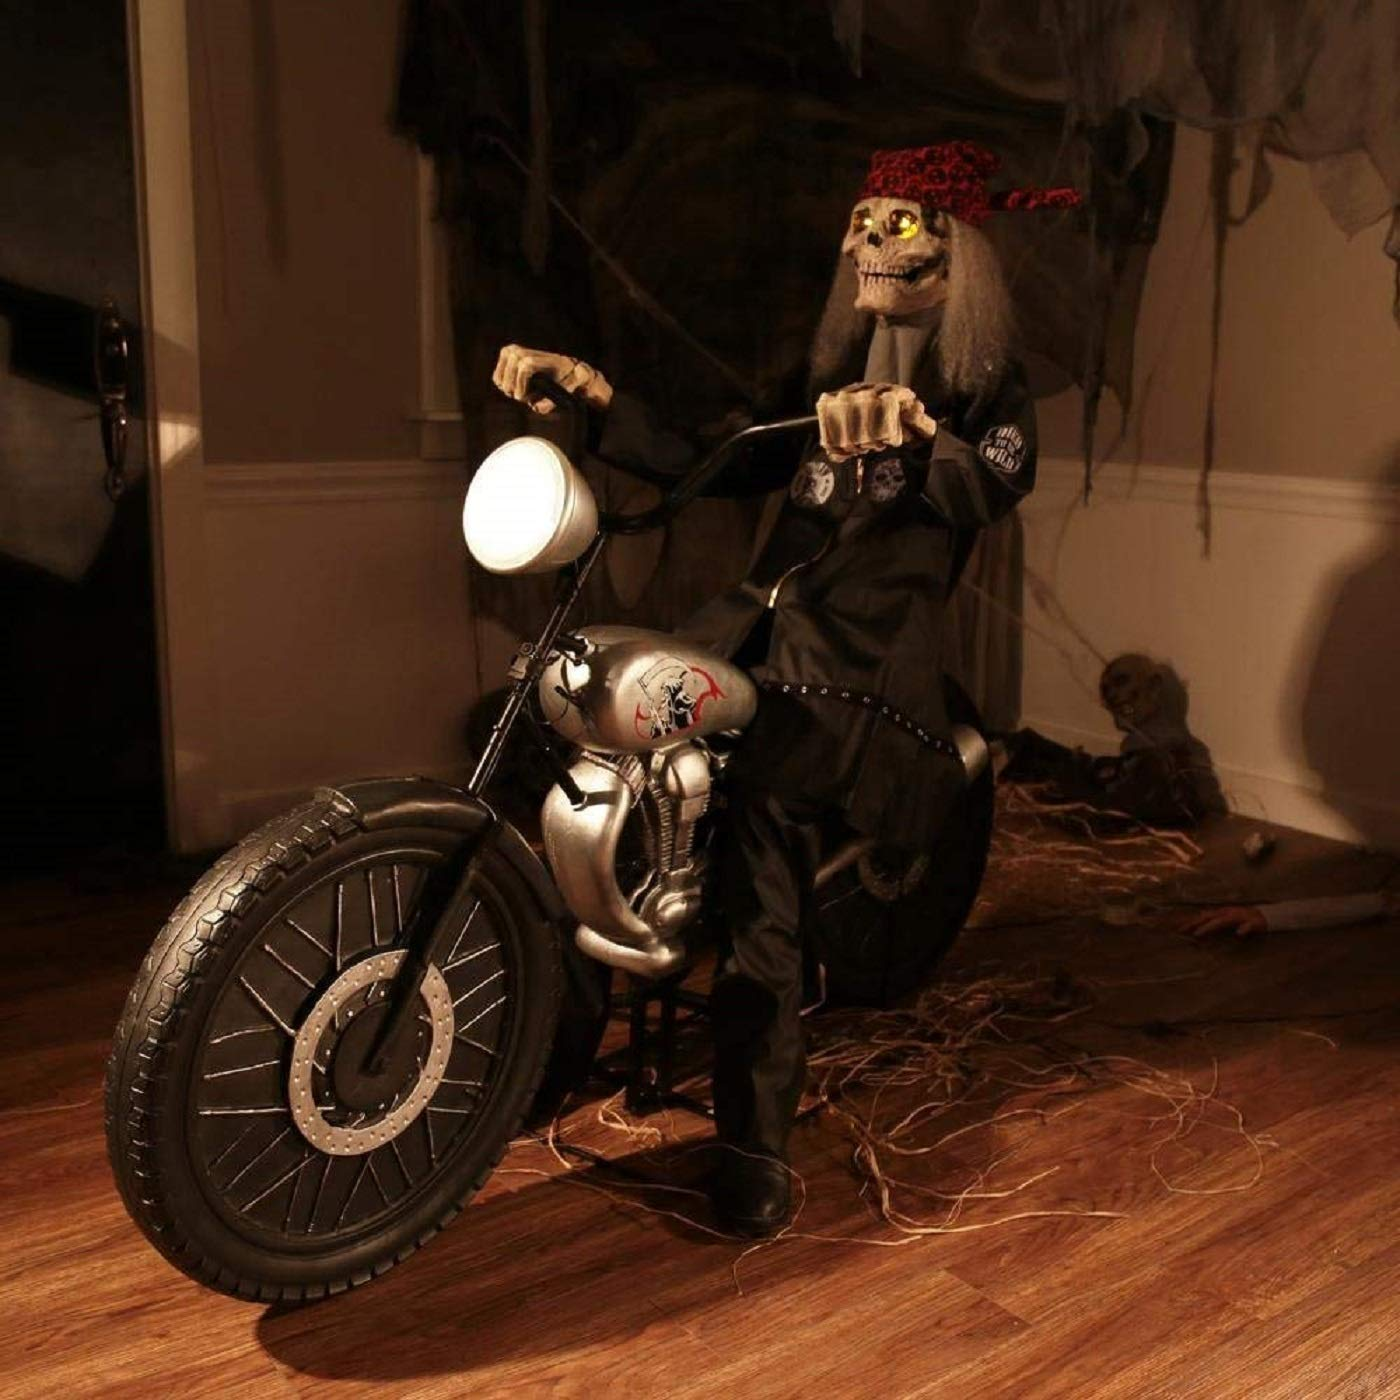 ghi Animated Biker Skeleton Reaper On Motorcycle Halloween Prop w/Fog Machine Hook Up